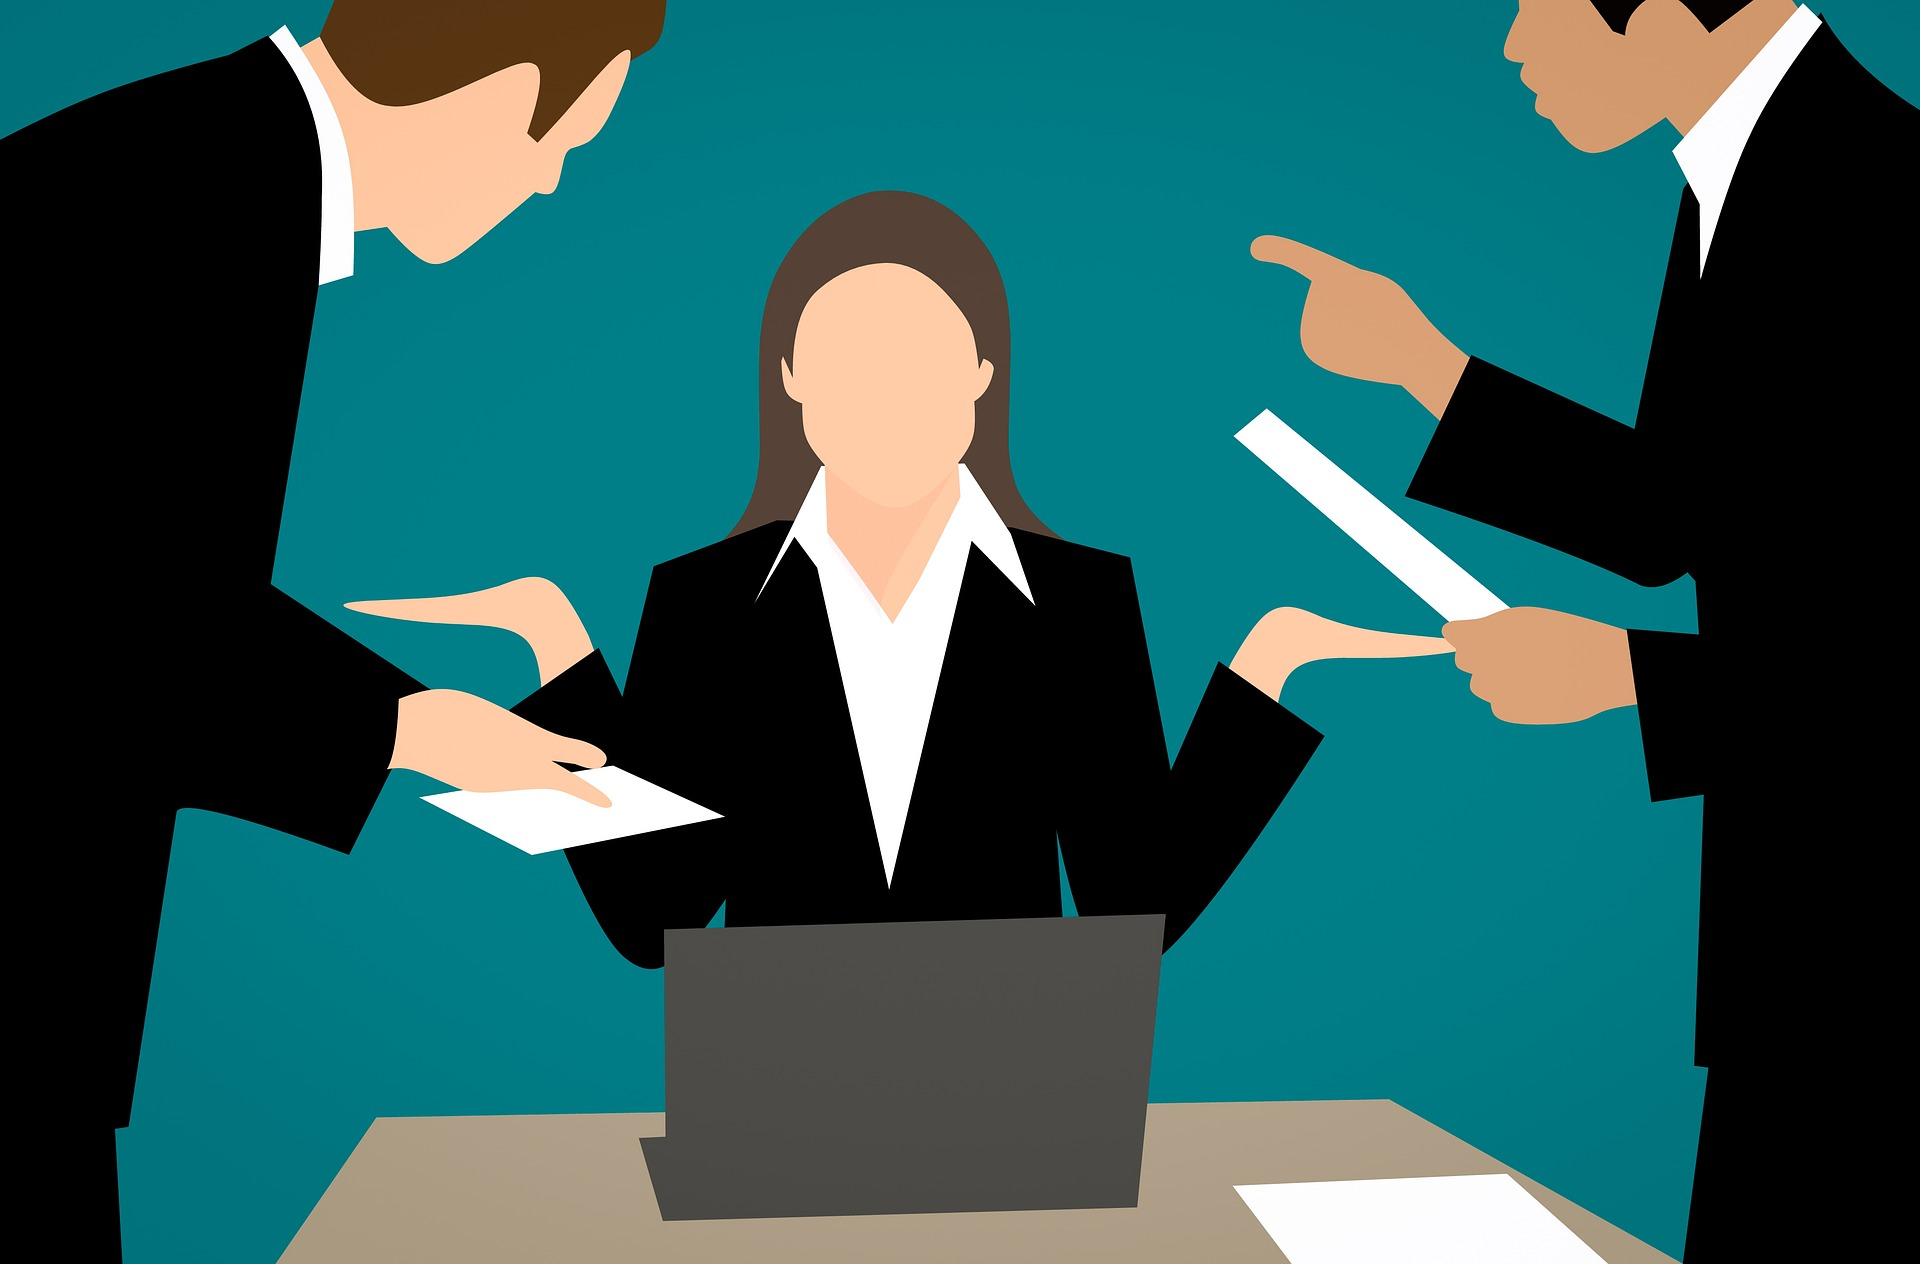 Workplace Conflict - Peer to Peer resolution skills for managers